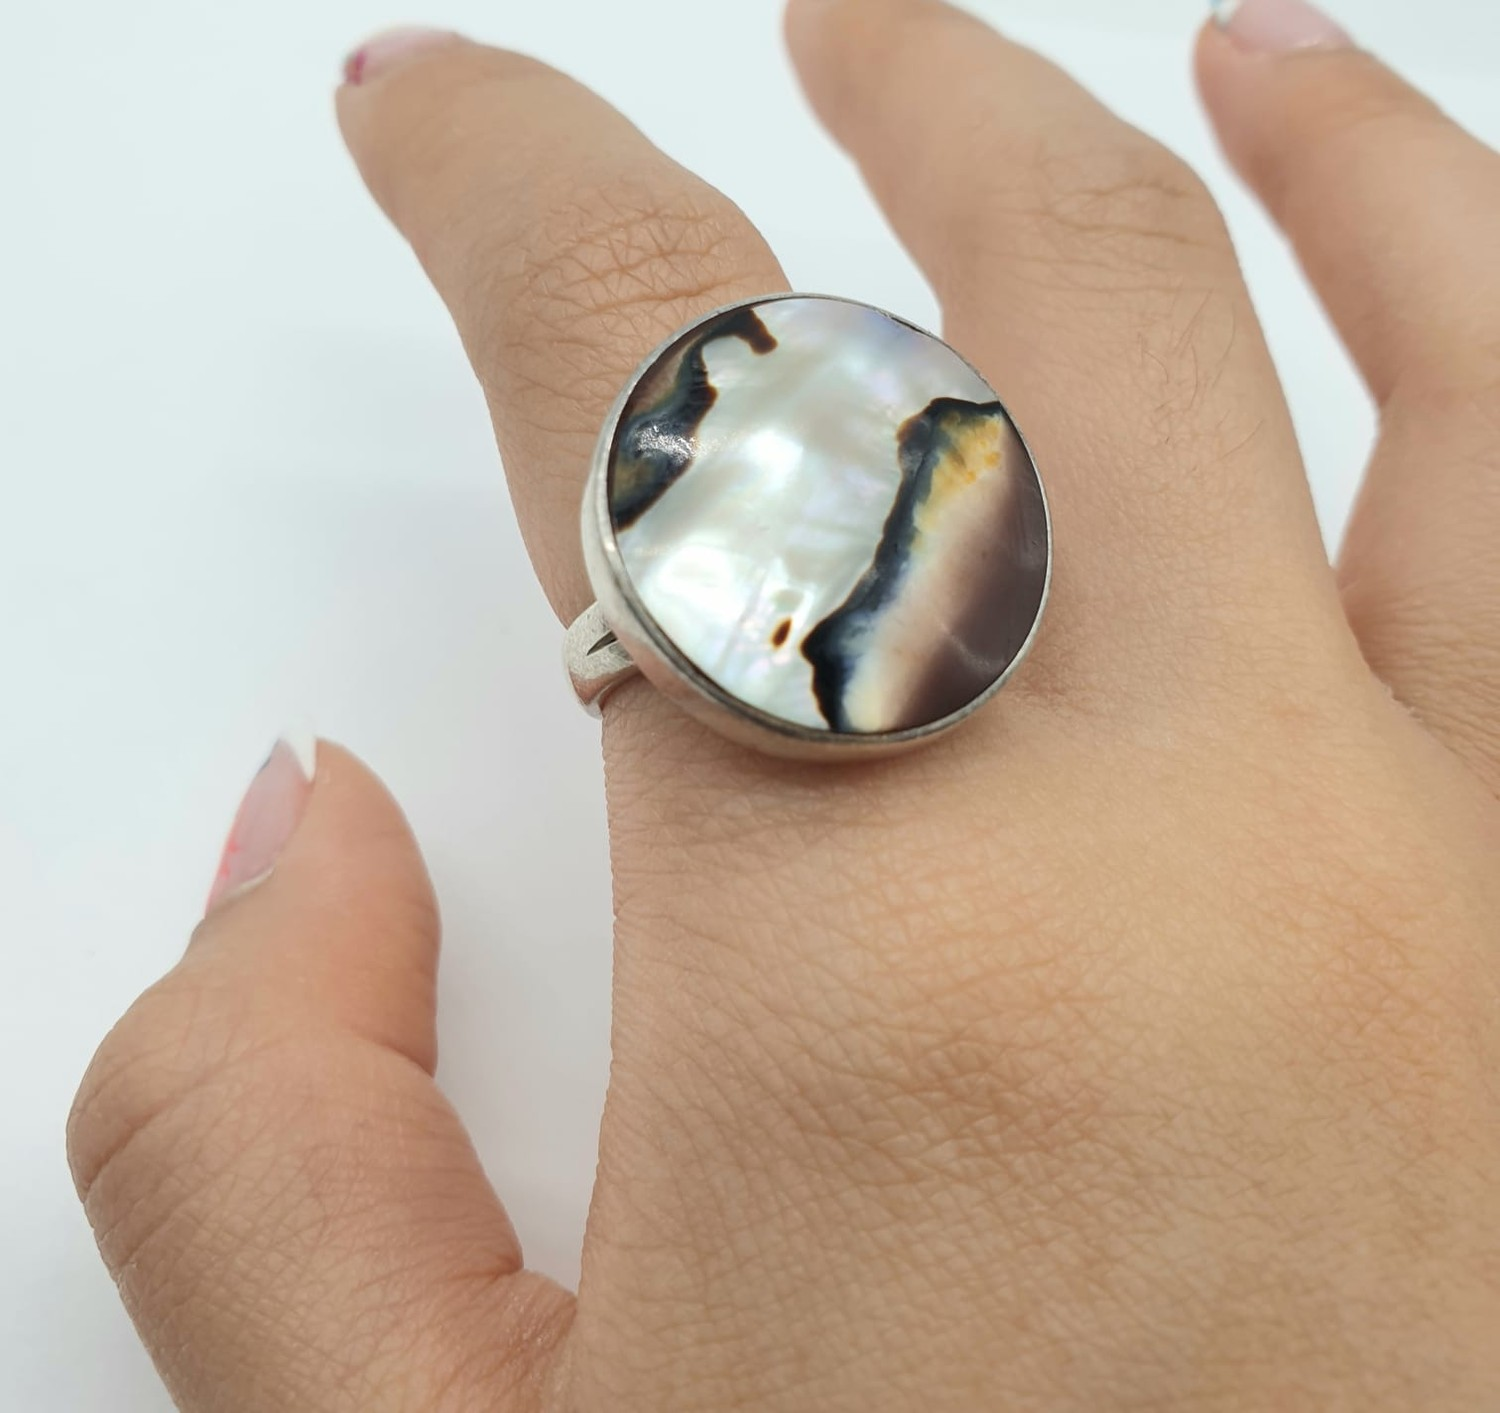 Silver ring having large circular Agate stone to top. Size L. - Image 4 of 6